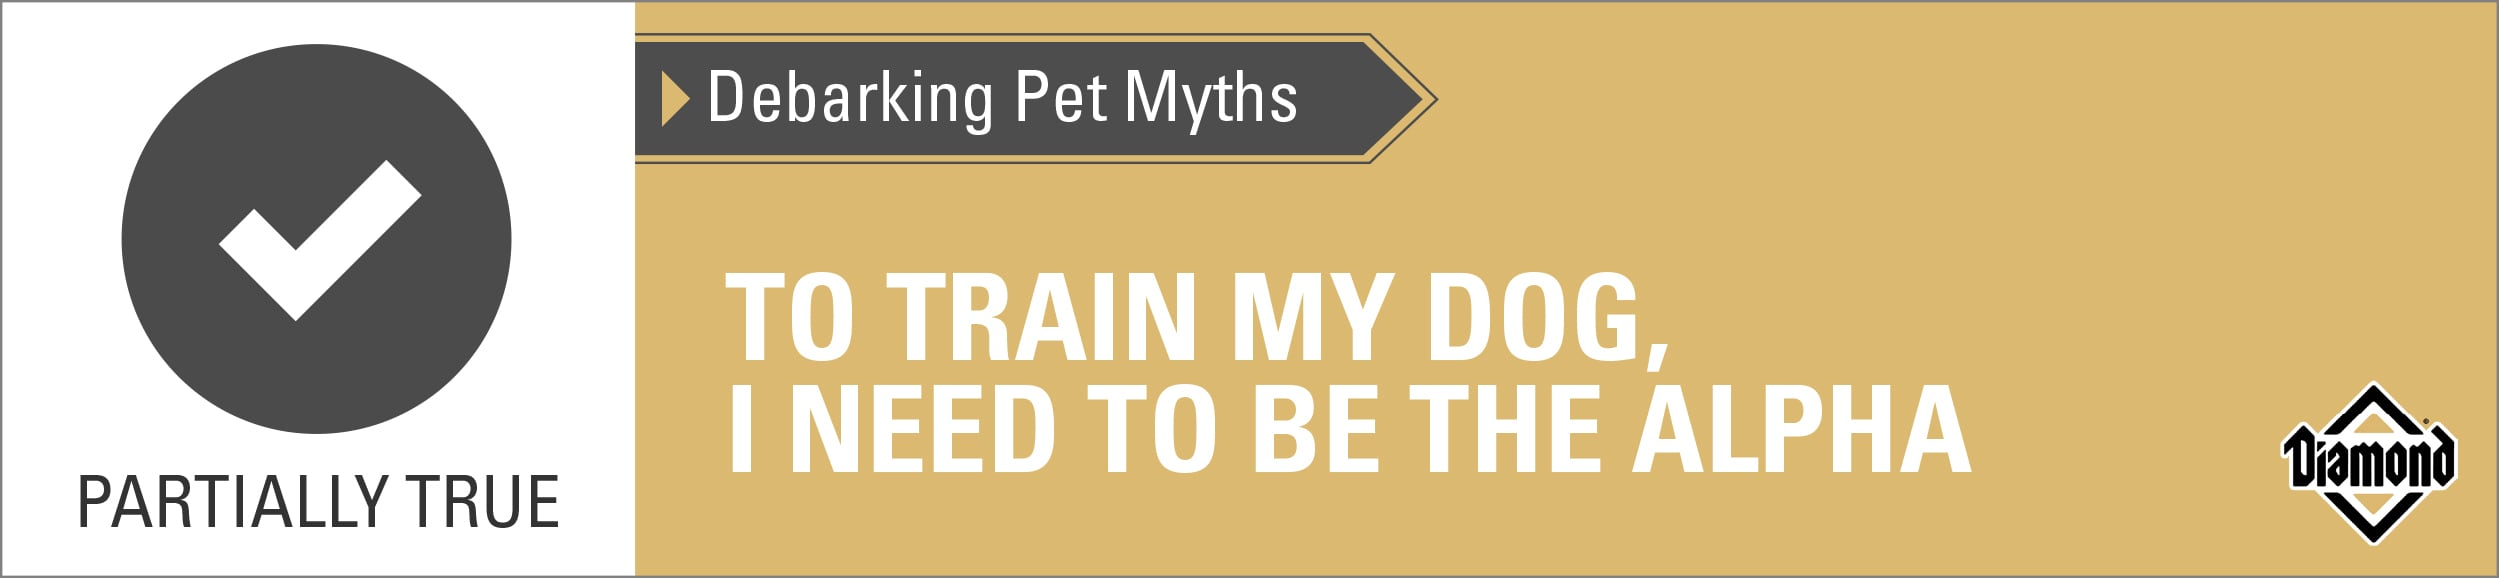 Partially True: To Train My Dog, I Need to Be the Alpha   Diamond Pet Foods